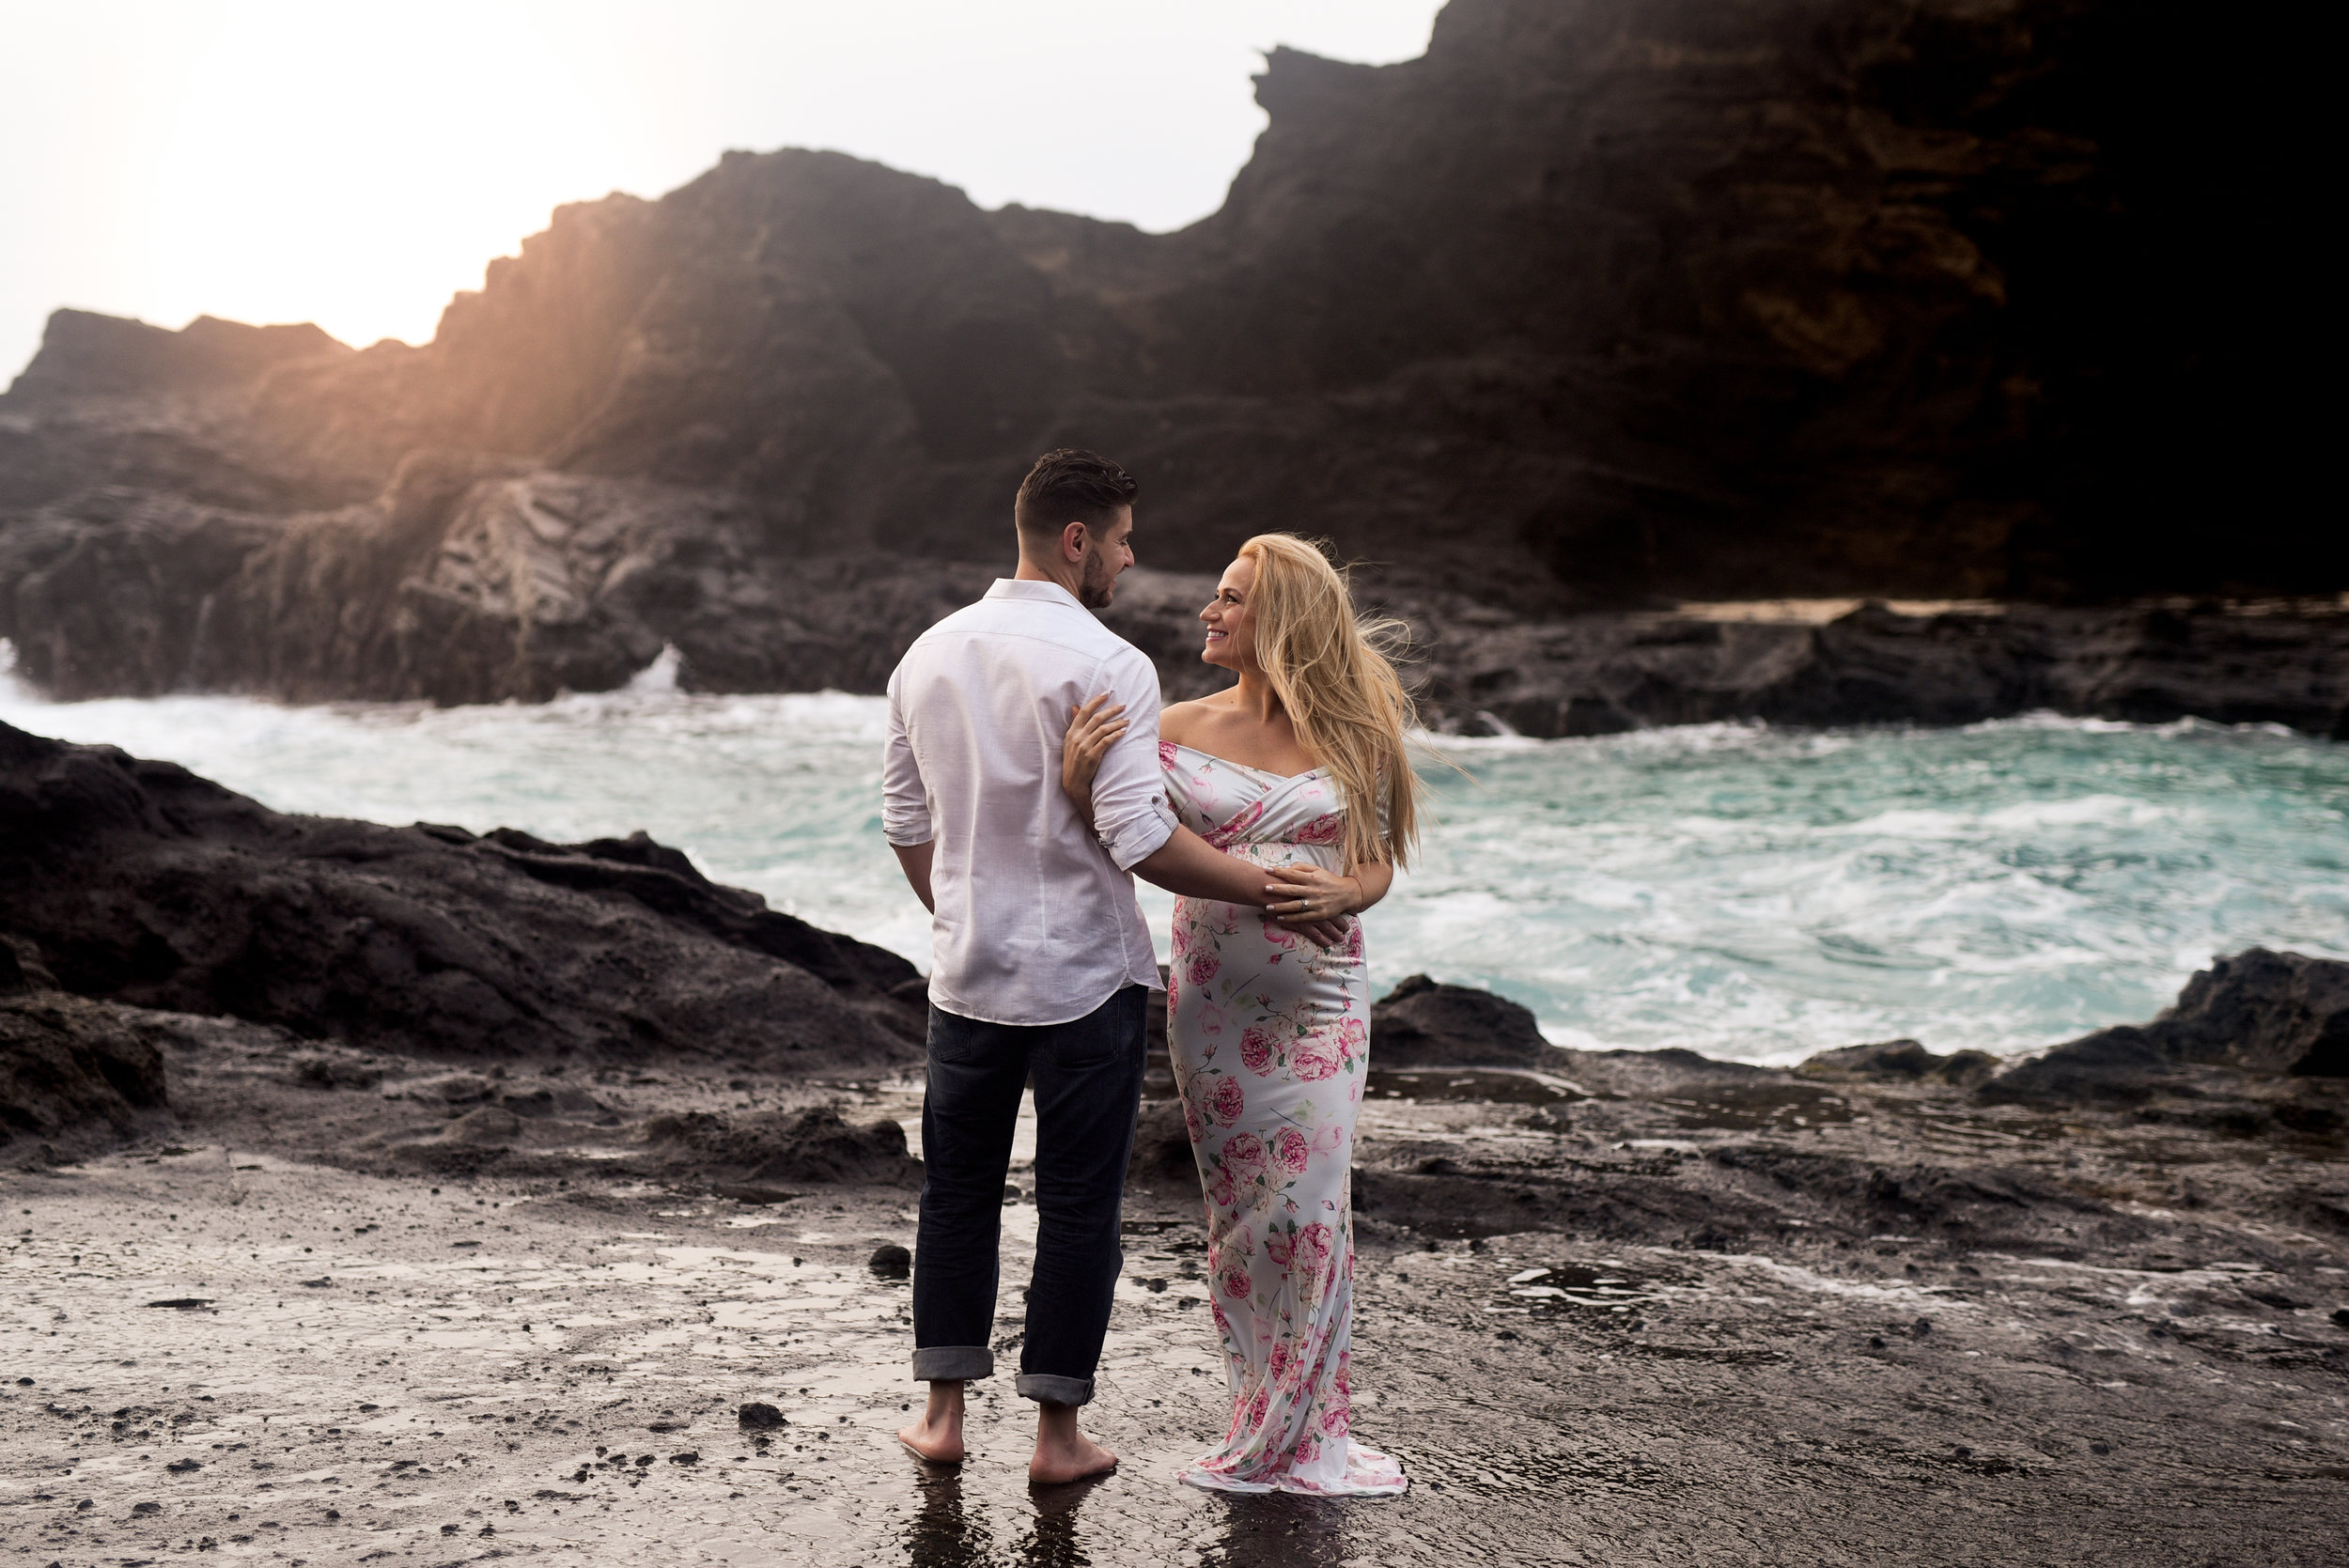 sarah_lynn_photography_newborn_photographer_oahu_maternity_pregnancy_beach